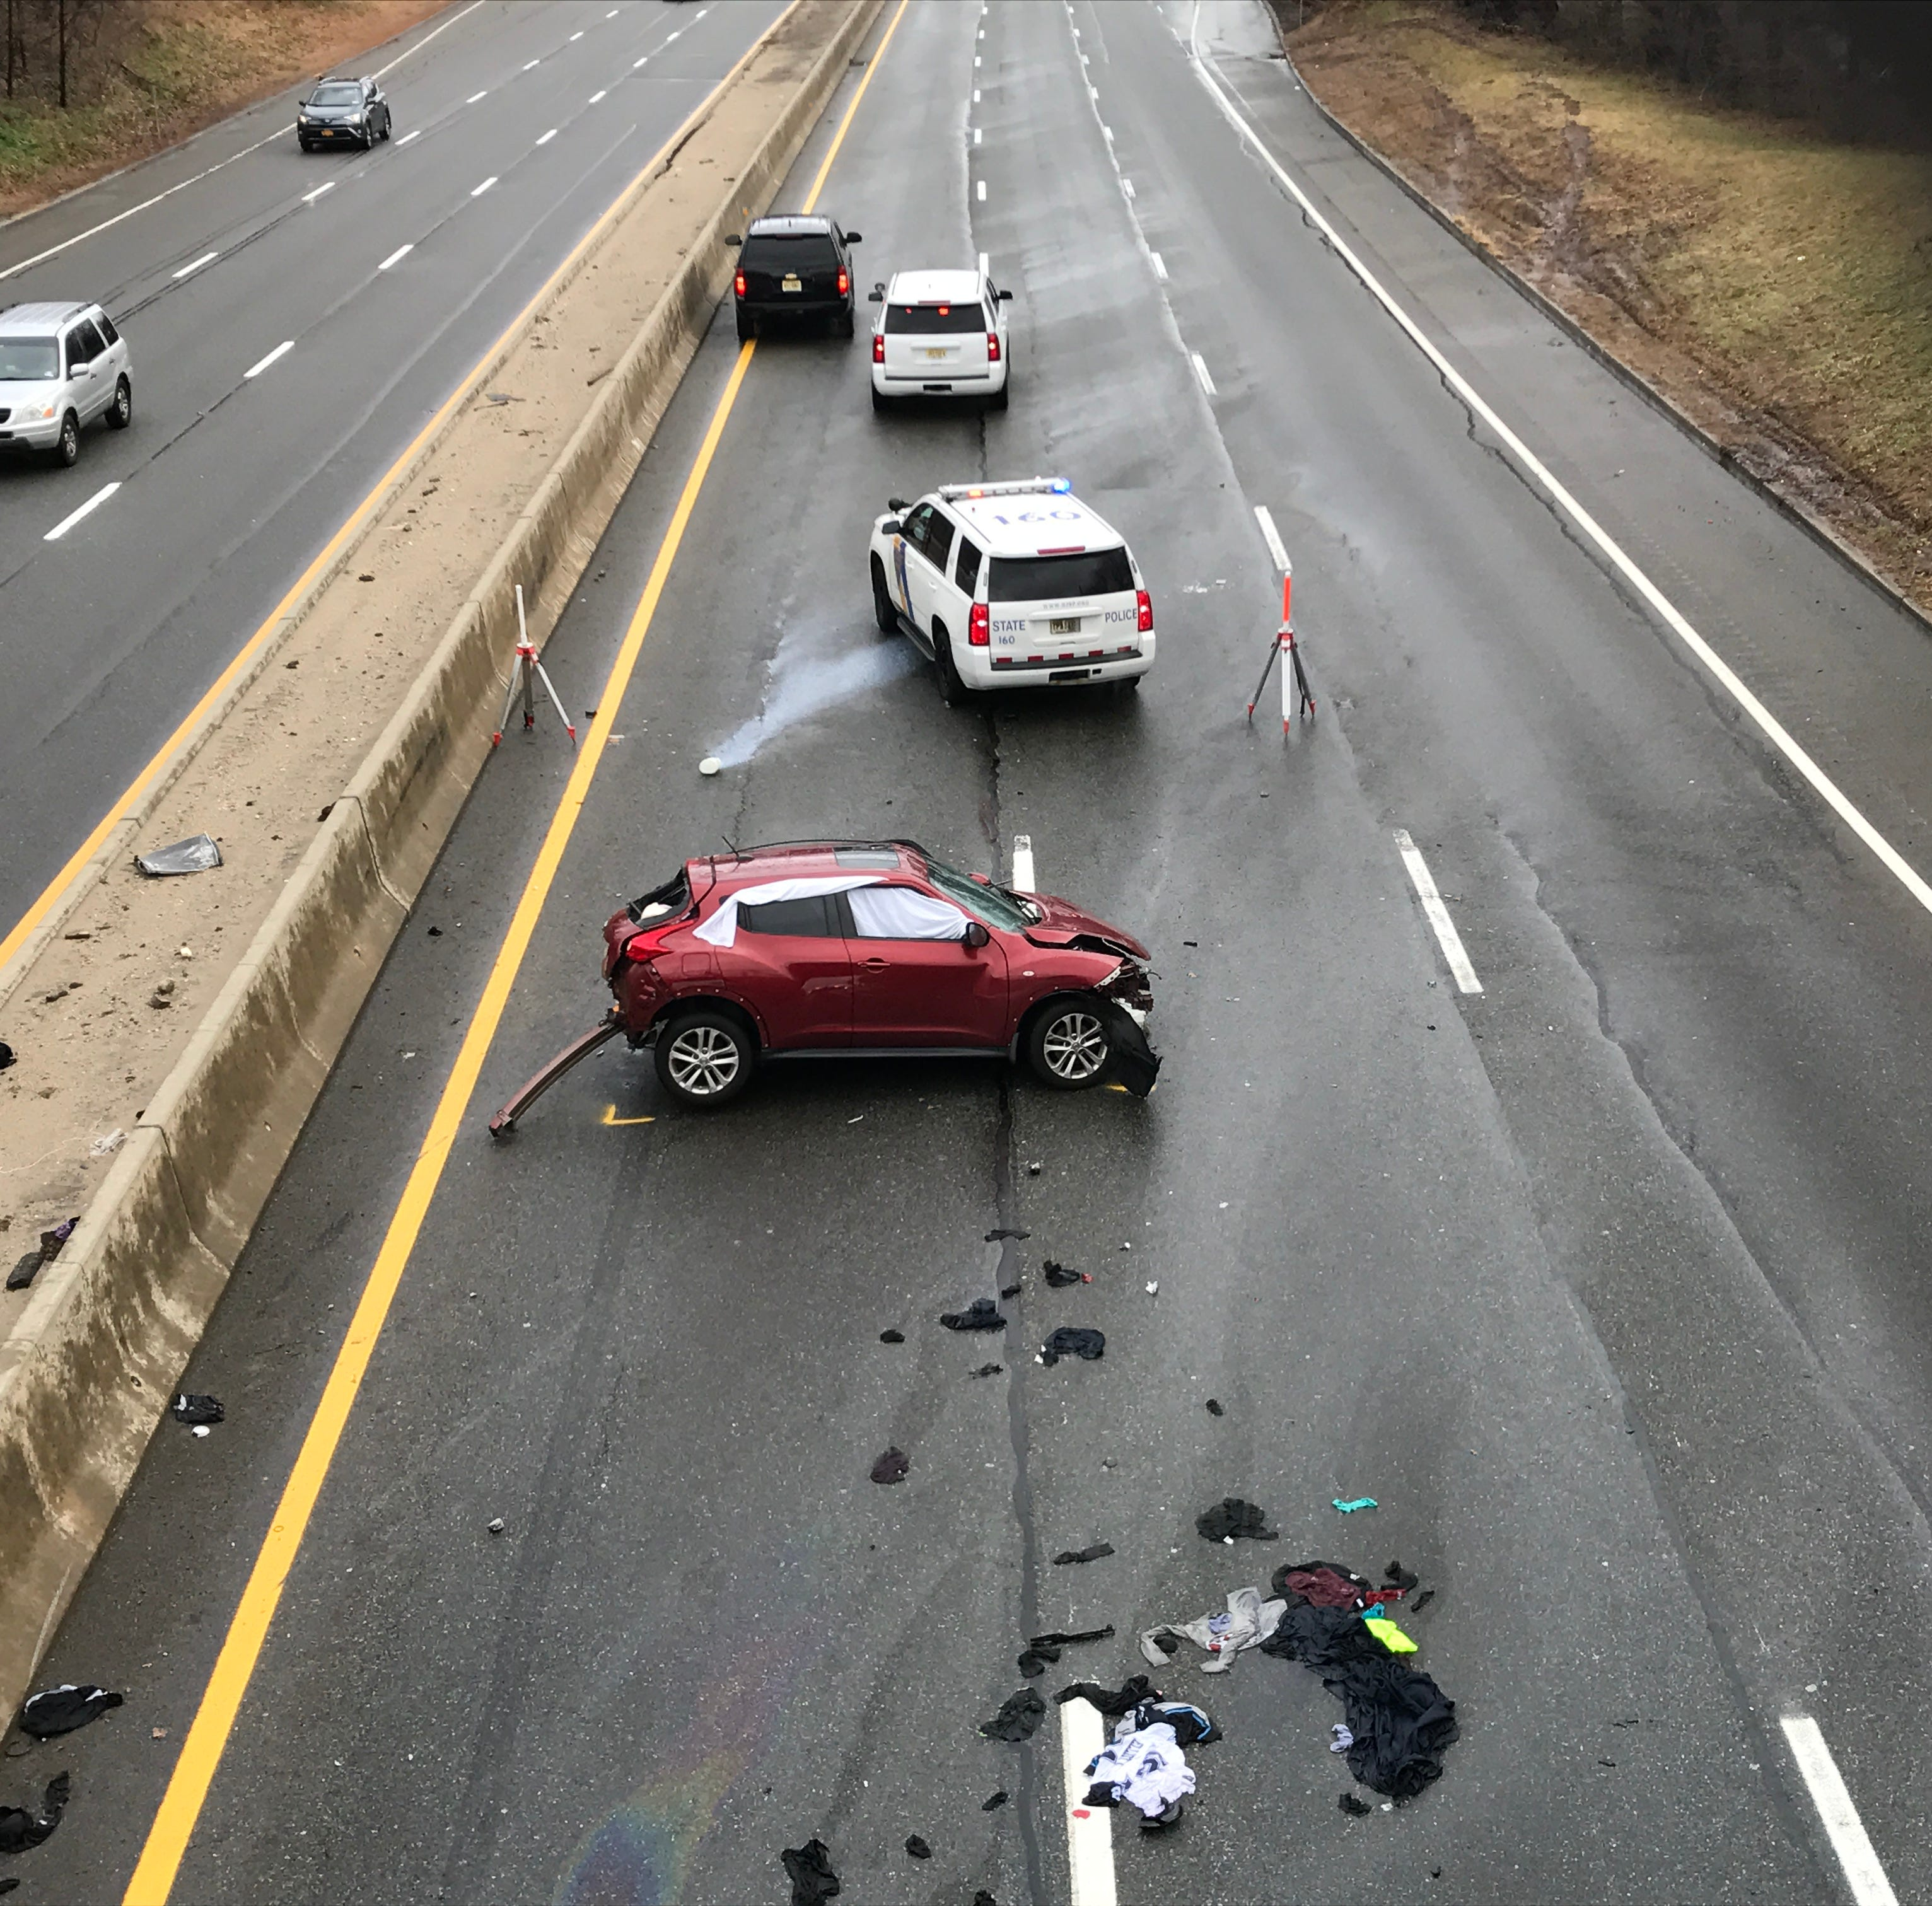 Rahway resident killed in Garden State Parkway accident in Clifton